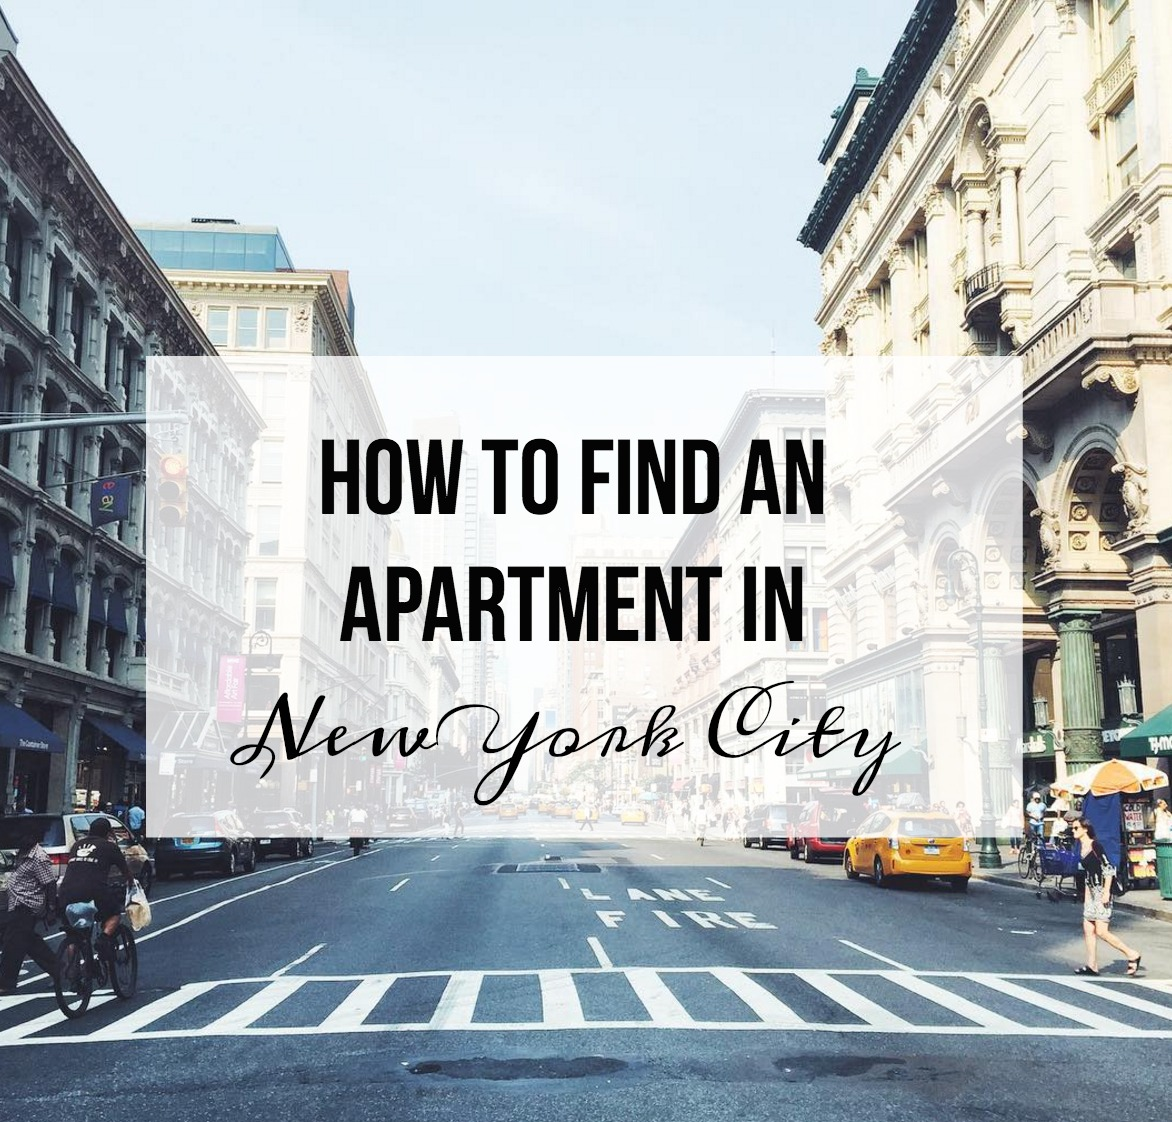 Best Sites To Find An Apartment: How To Find An Apartment In New York